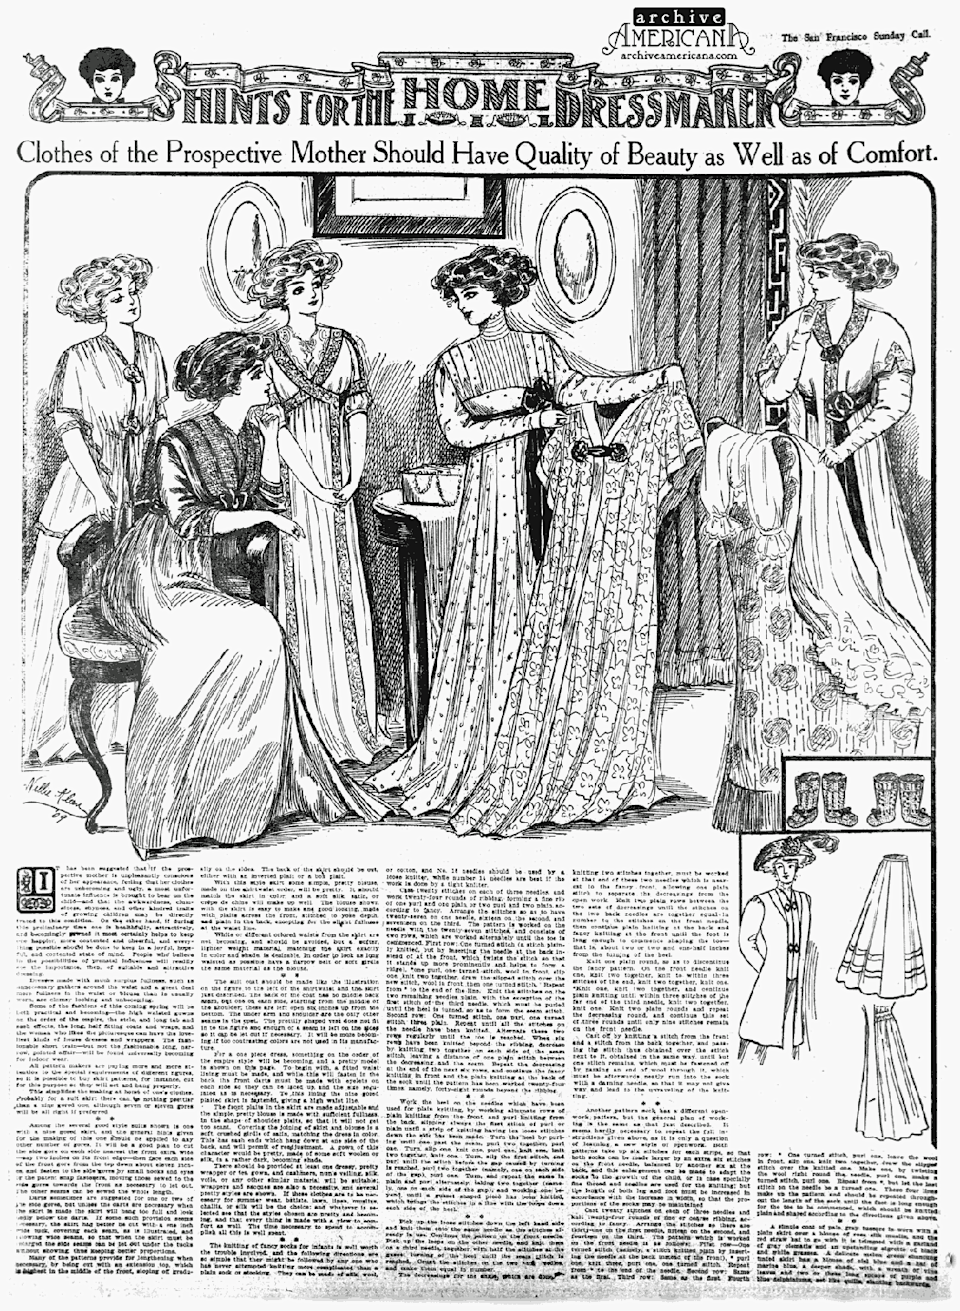 "<p>""Clothes of Prospective Mothers Should Have Quality of Beauty as Well as of Comfort."" A novel concept, indeed.</p>"